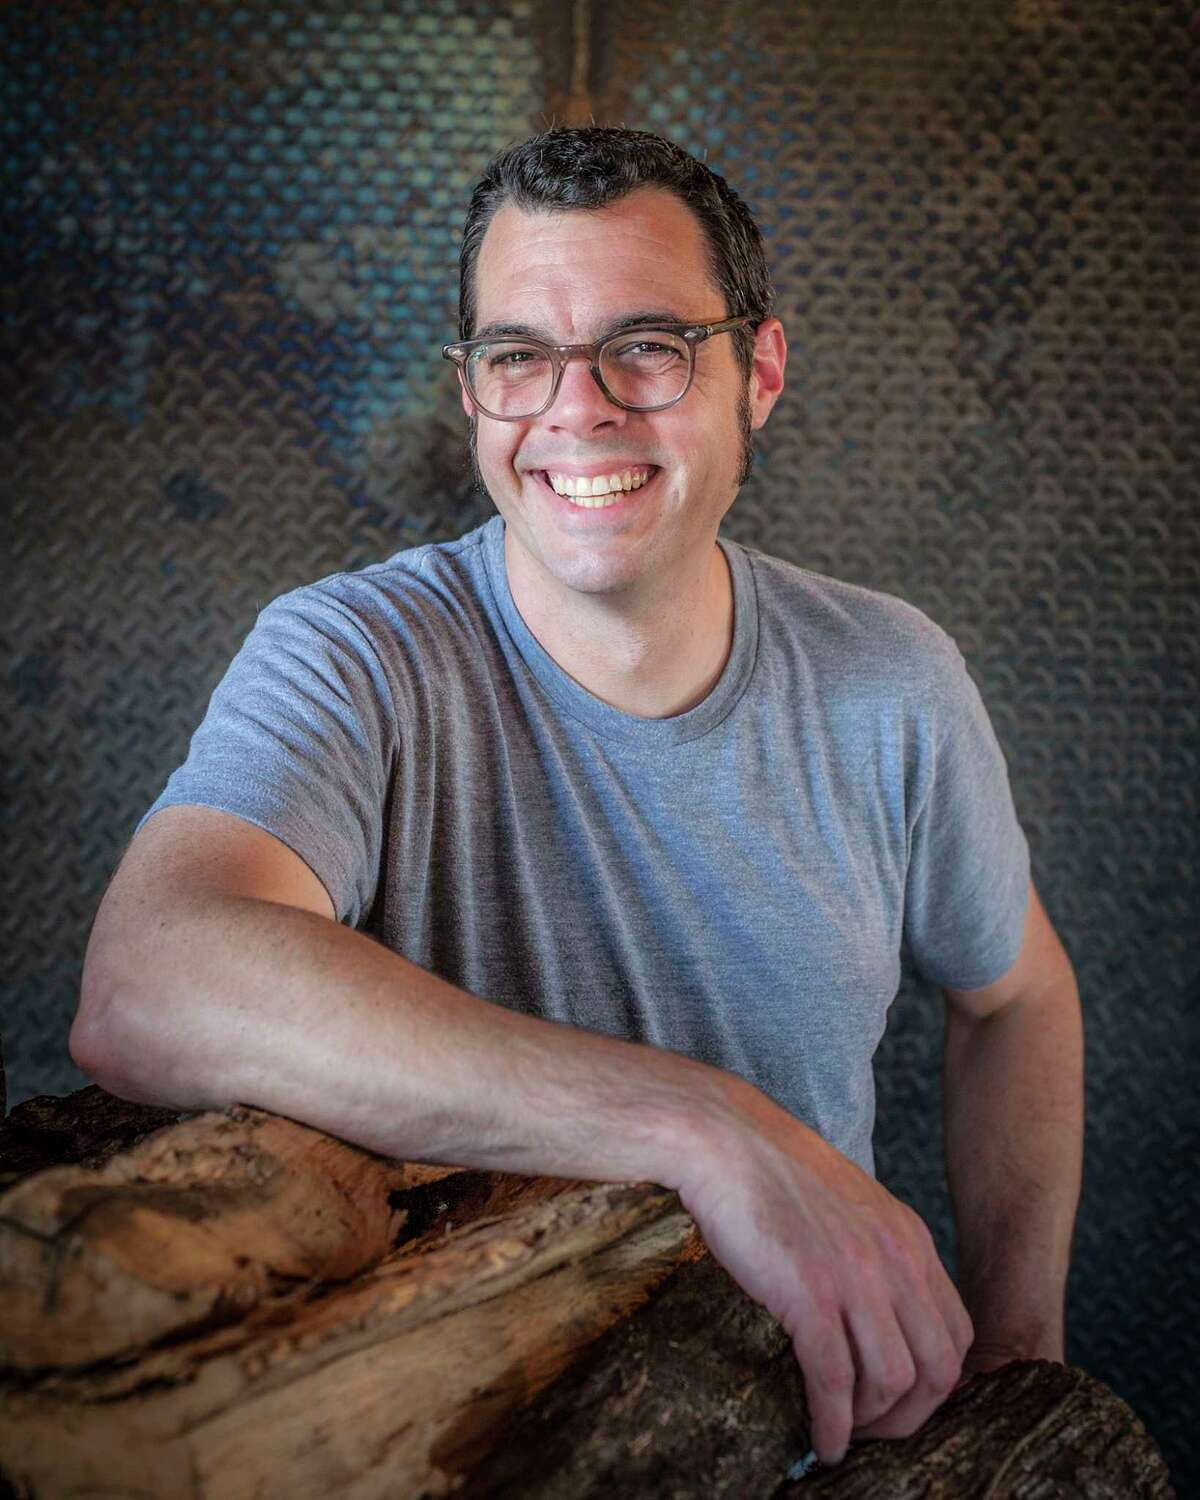 Aaron Franklin of Franklin Barbecue in Austin will be among the chefs participating in Southern Smoke on Sept. 30, 2018.